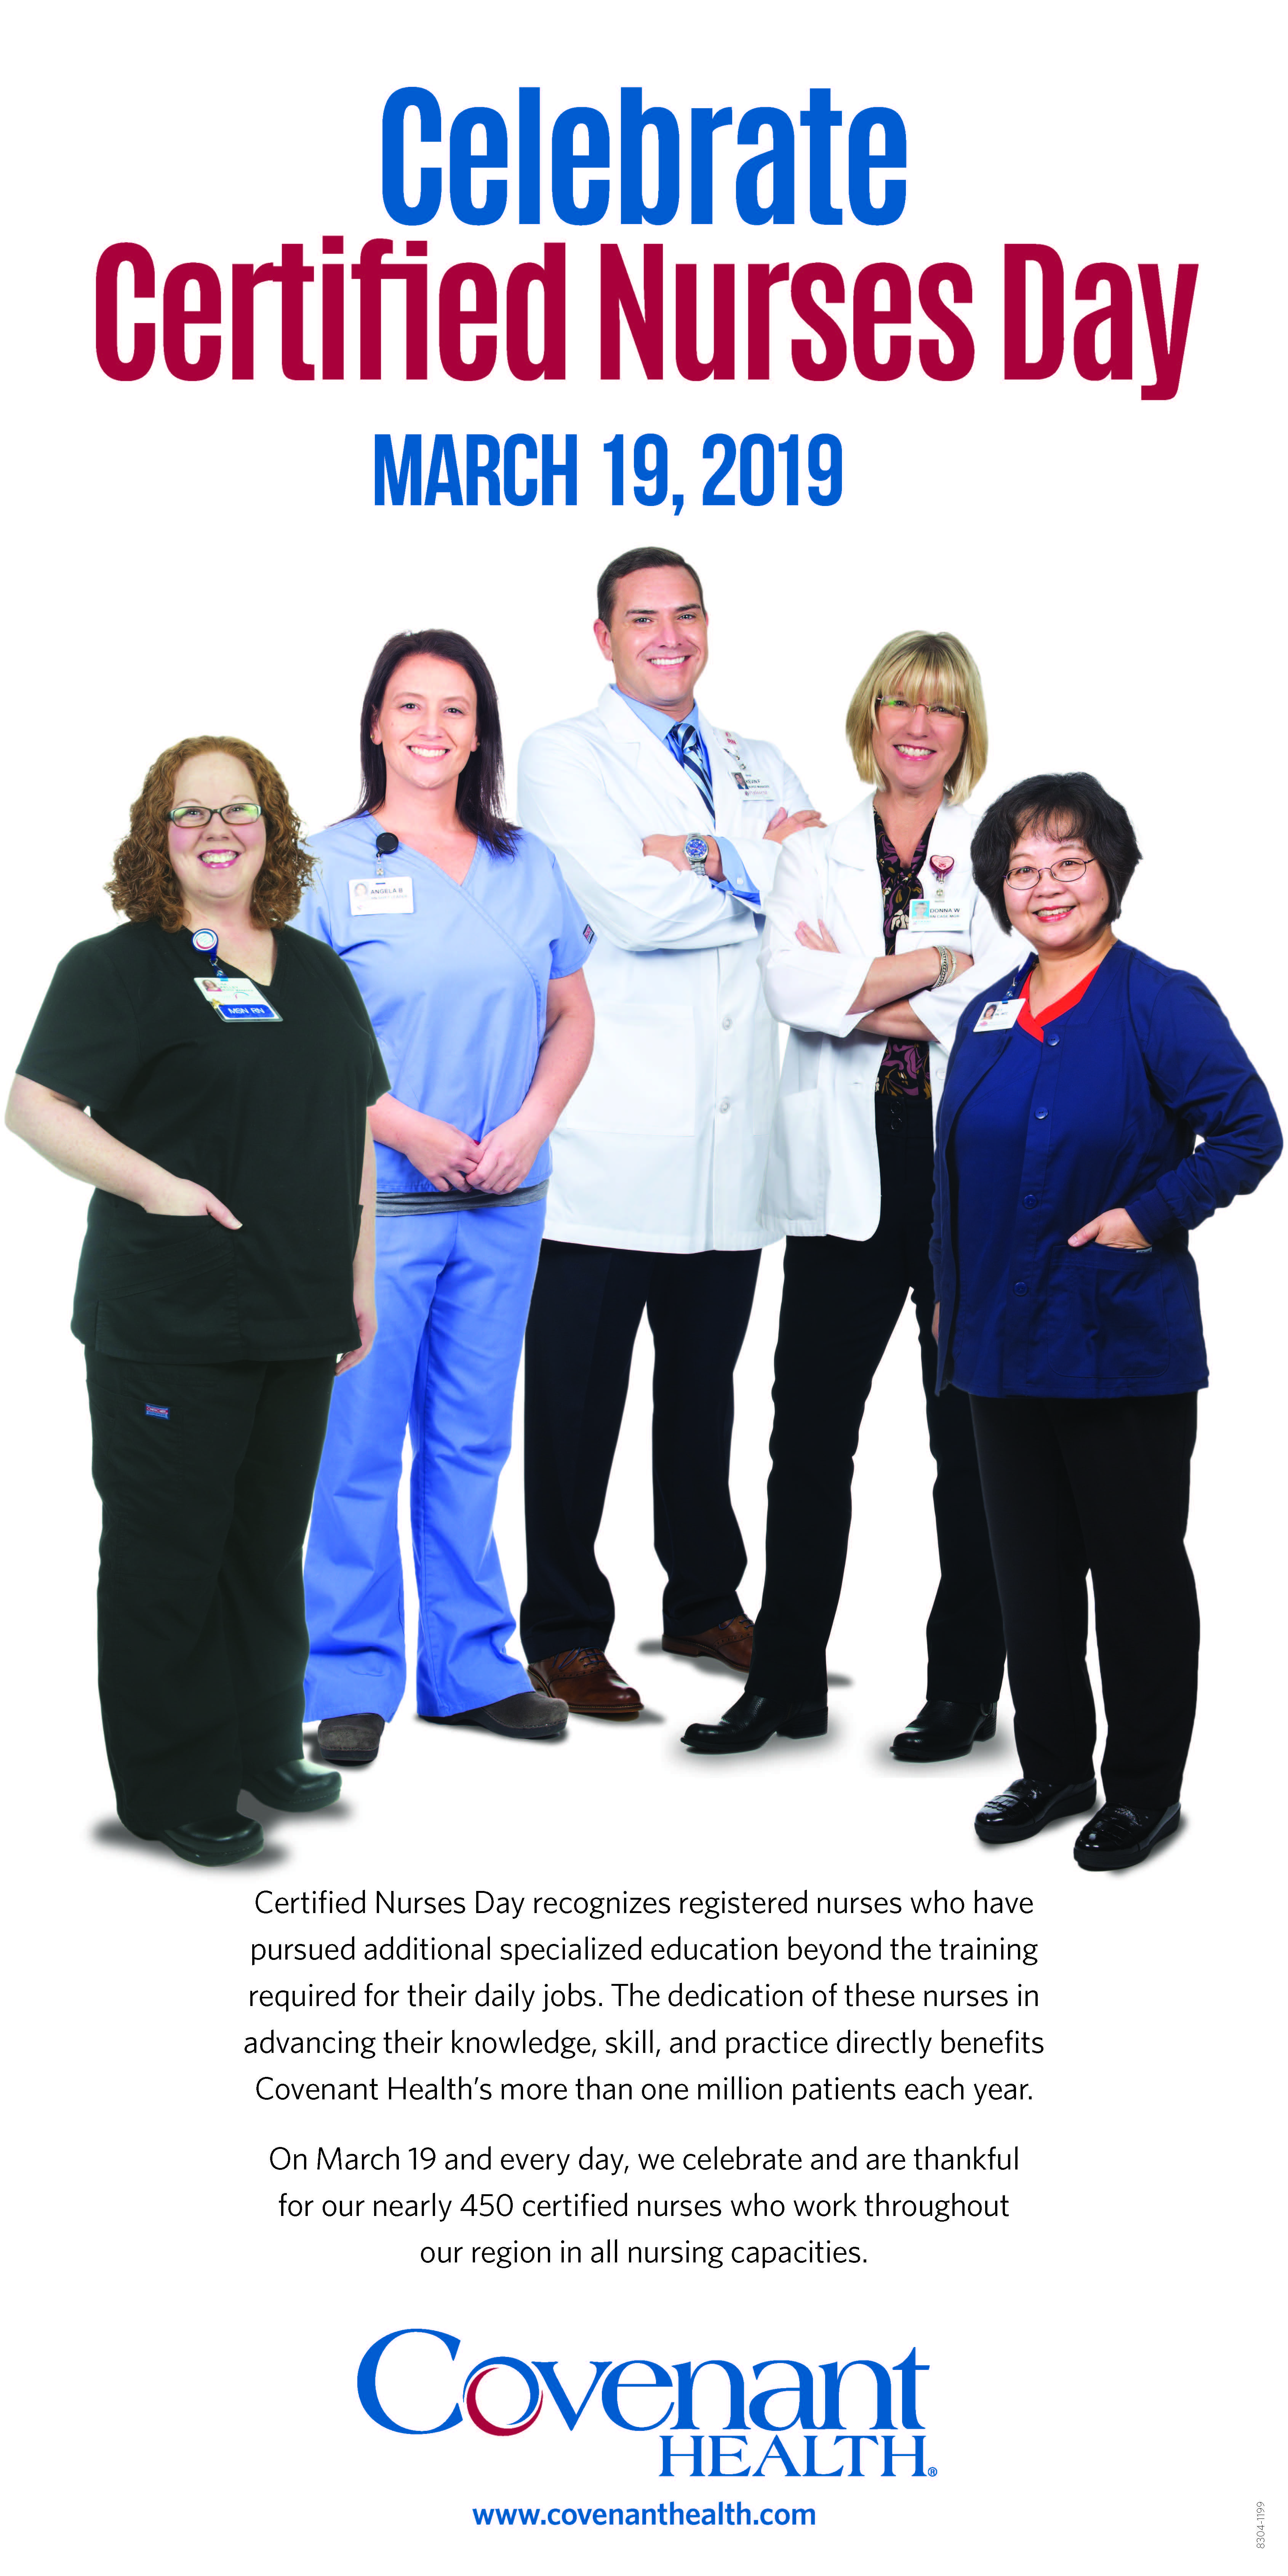 Covenant Health celebrates Certified Nurses Day on March 19.